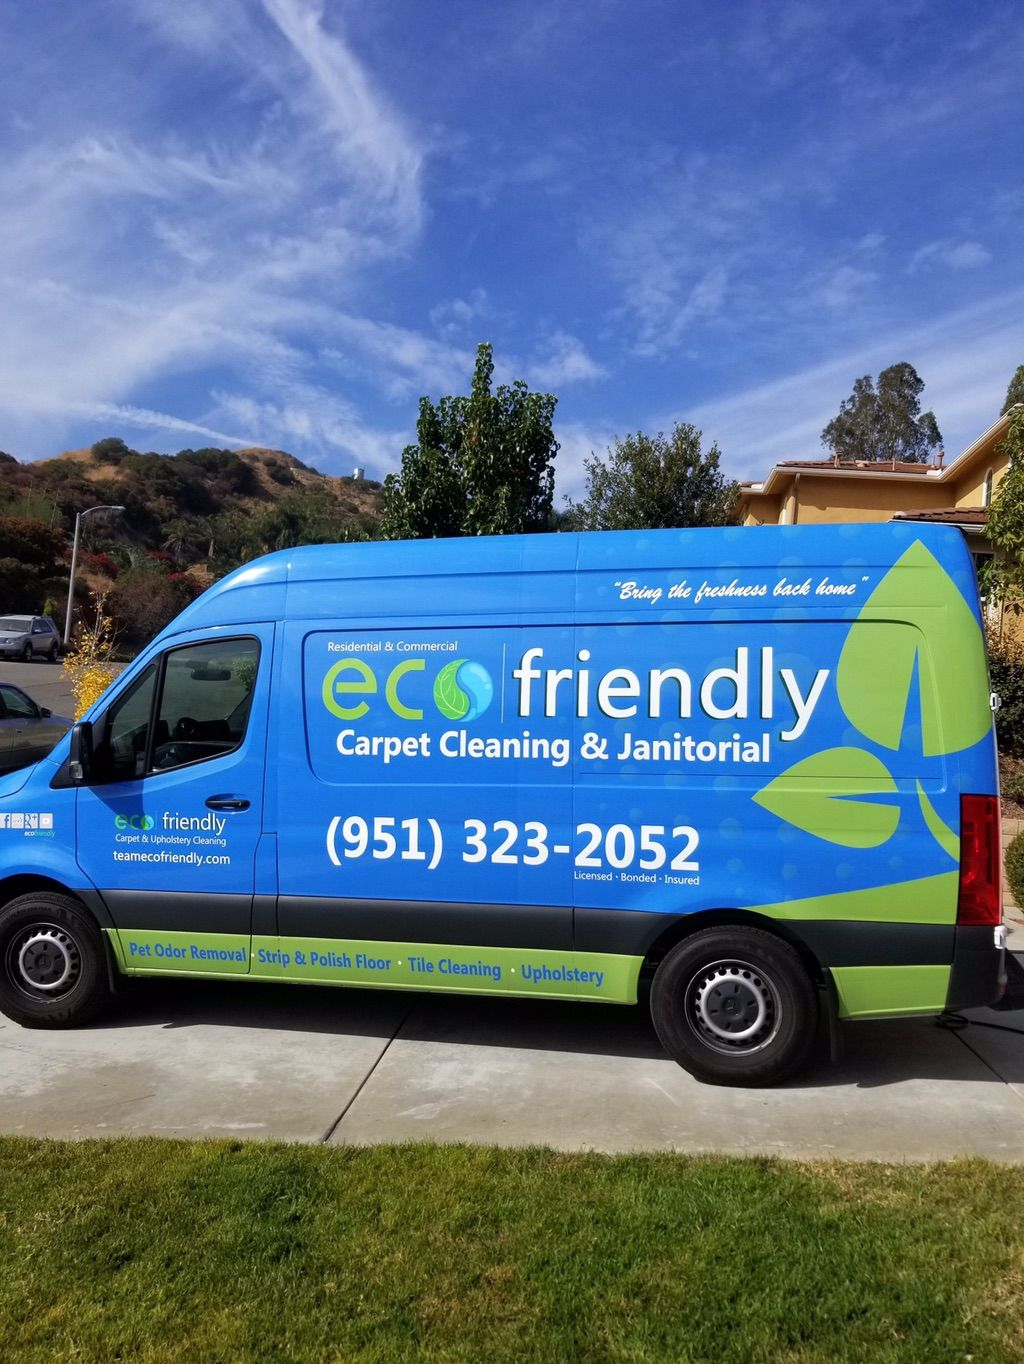 Ecofriendly Carpet and Upholstery Cleaning